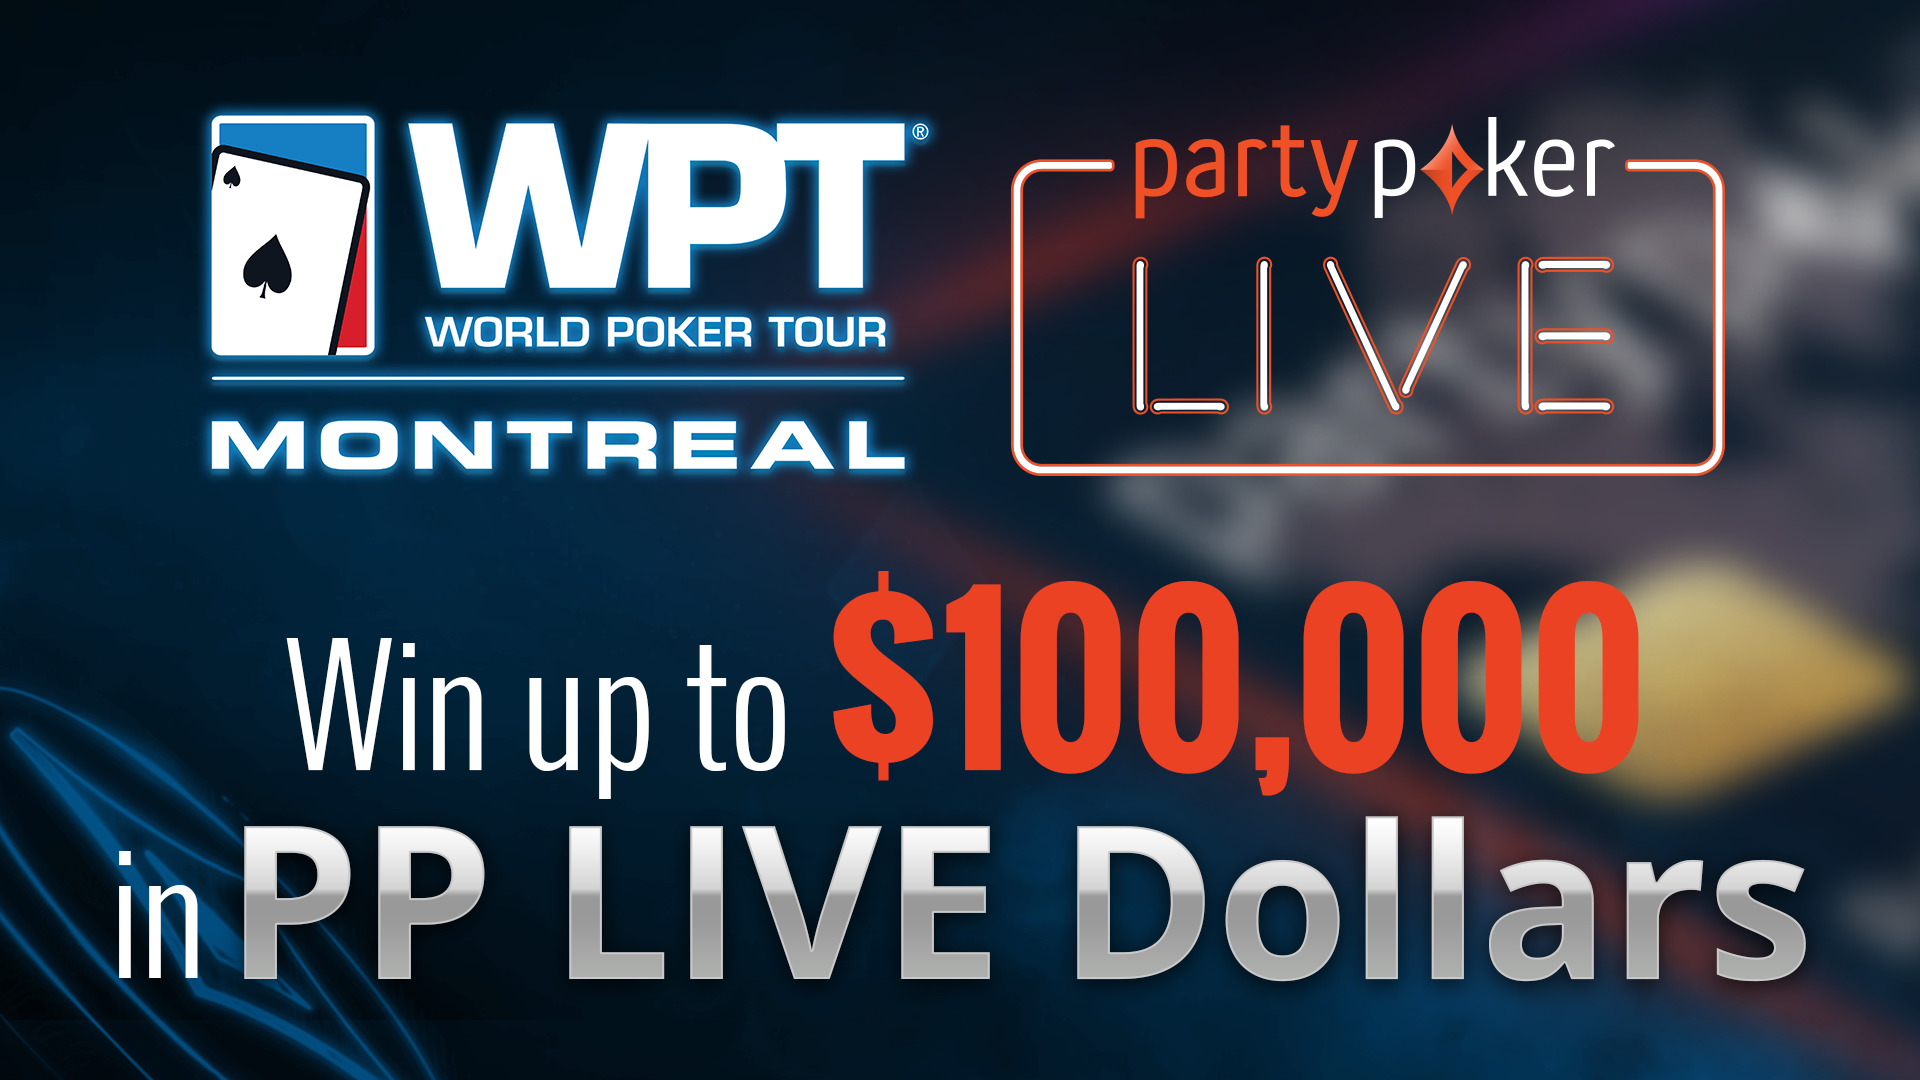 $200K up for grabs at the WPT Montreal!